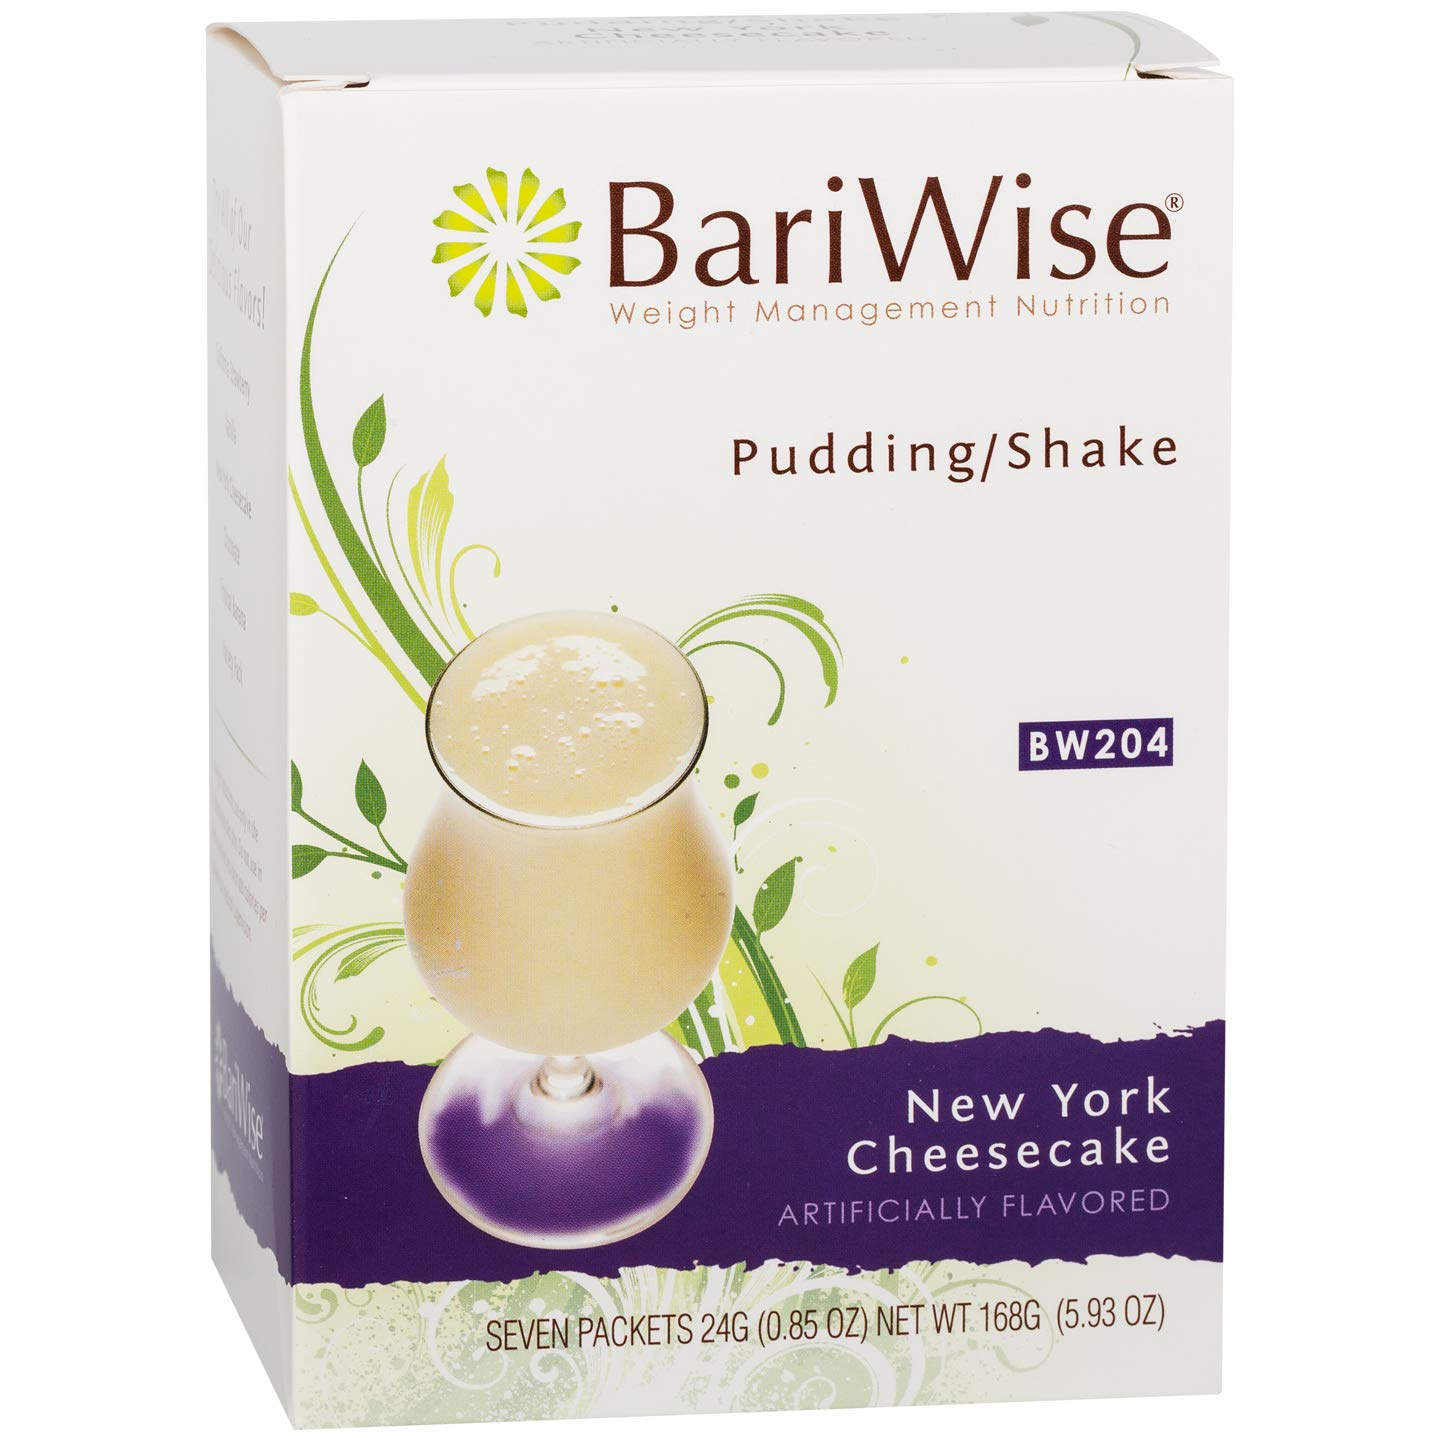 BariWise High Protein Shake / Low-Carb Diet Pudding & Shake Mix - New York Cheesecake (7 Servings/Box) - Gluten Free, Low Fat, Low Carb by BariWise